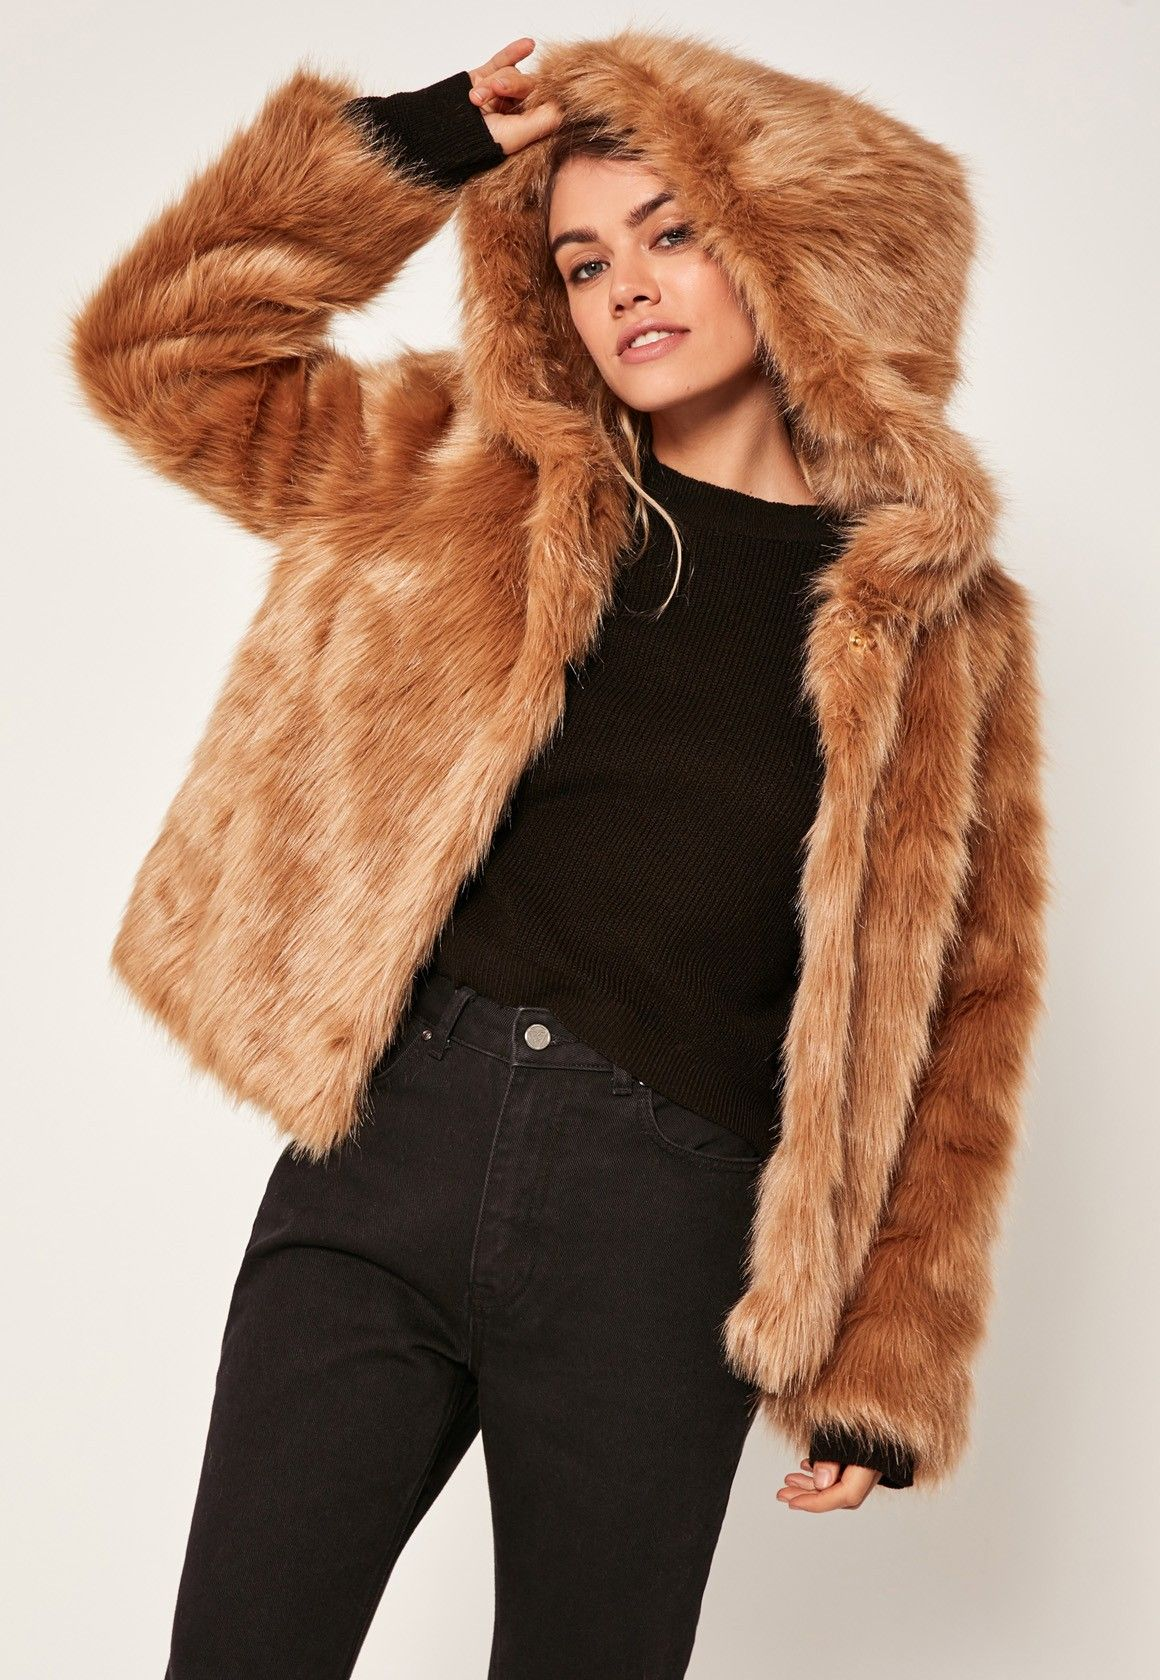 a64f7c5ca We love a faux fur coat here at Missguided and this caramel nude shade with  hood is top of our wish list.